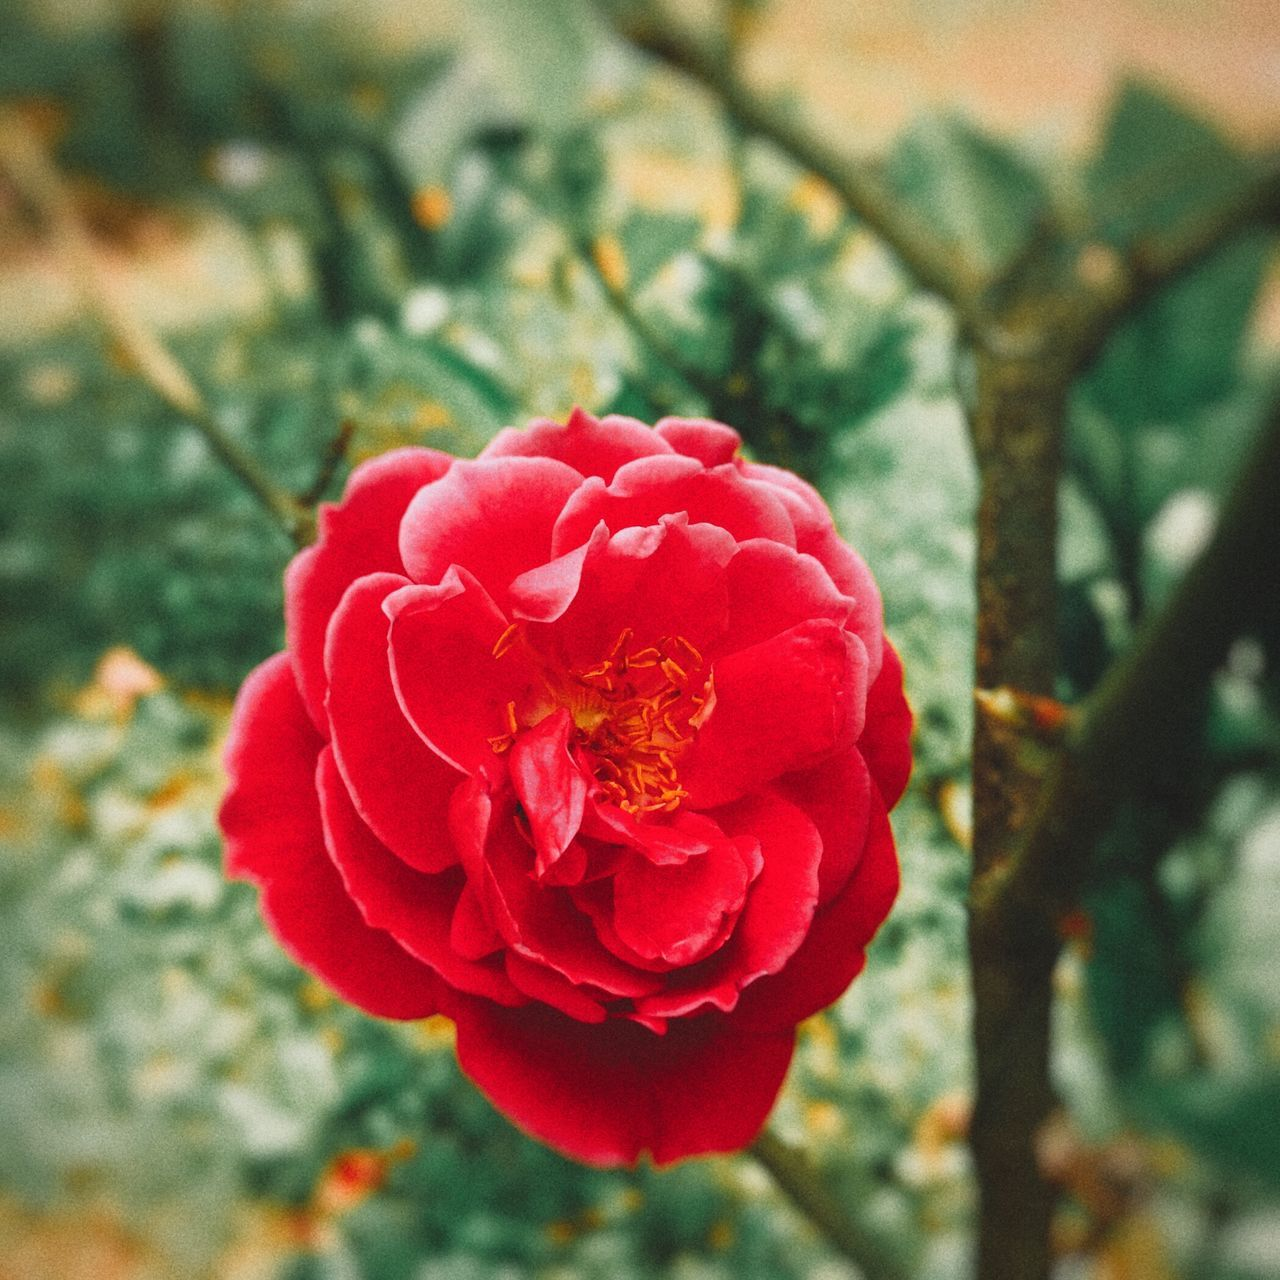 flower, petal, nature, beauty in nature, fragility, flower head, growth, rose - flower, focus on foreground, red, close-up, no people, day, blooming, wild rose, freshness, outdoors, plant